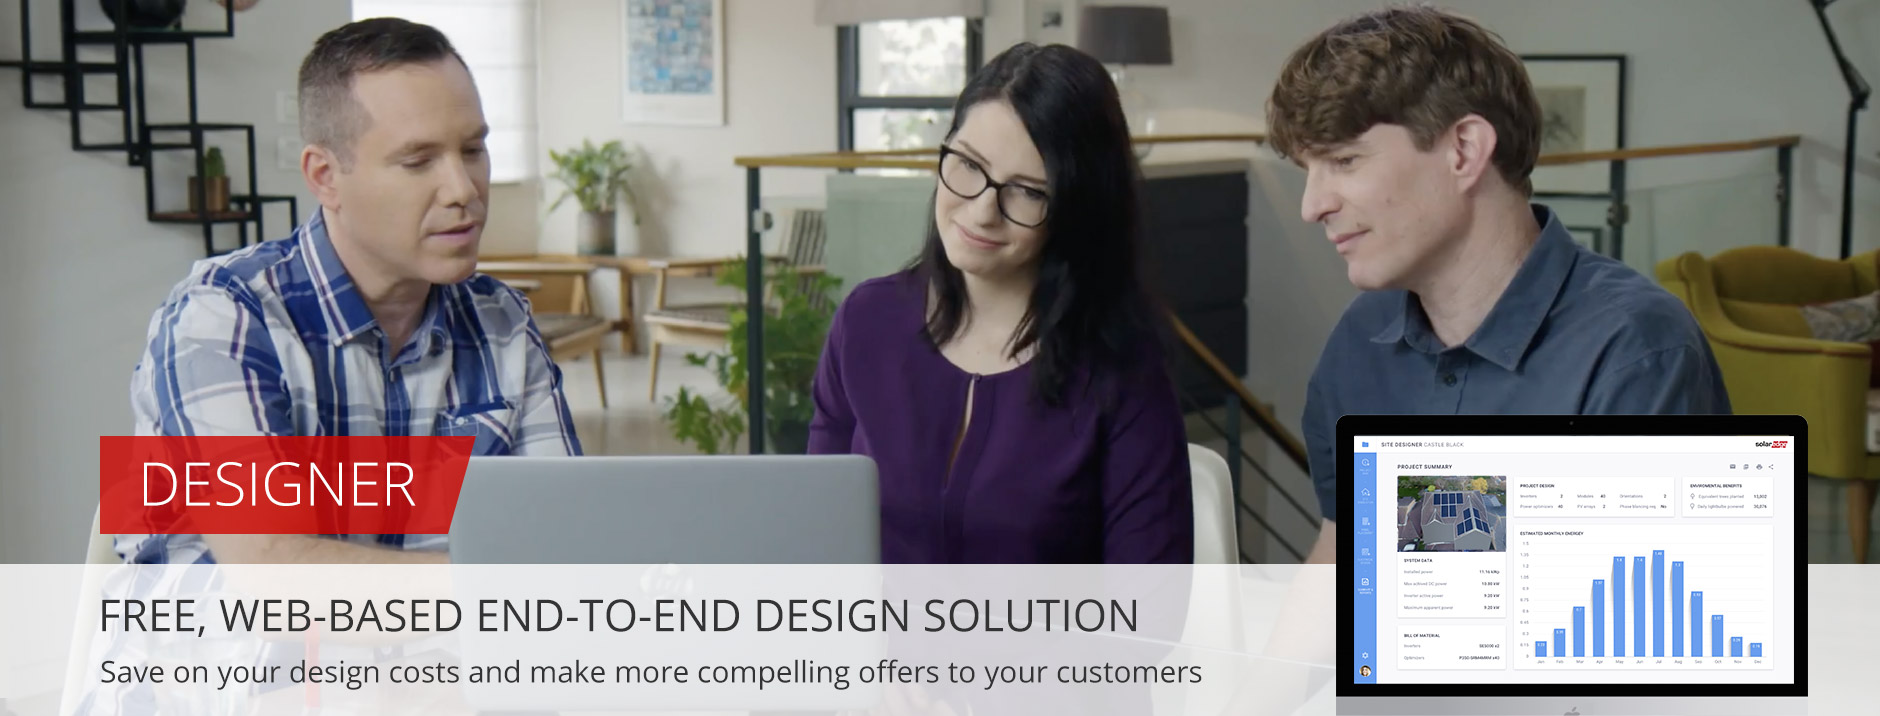 Designer. Free web-based end-to-end design solution. Save on your design costs and make more compelling offers to your customers.